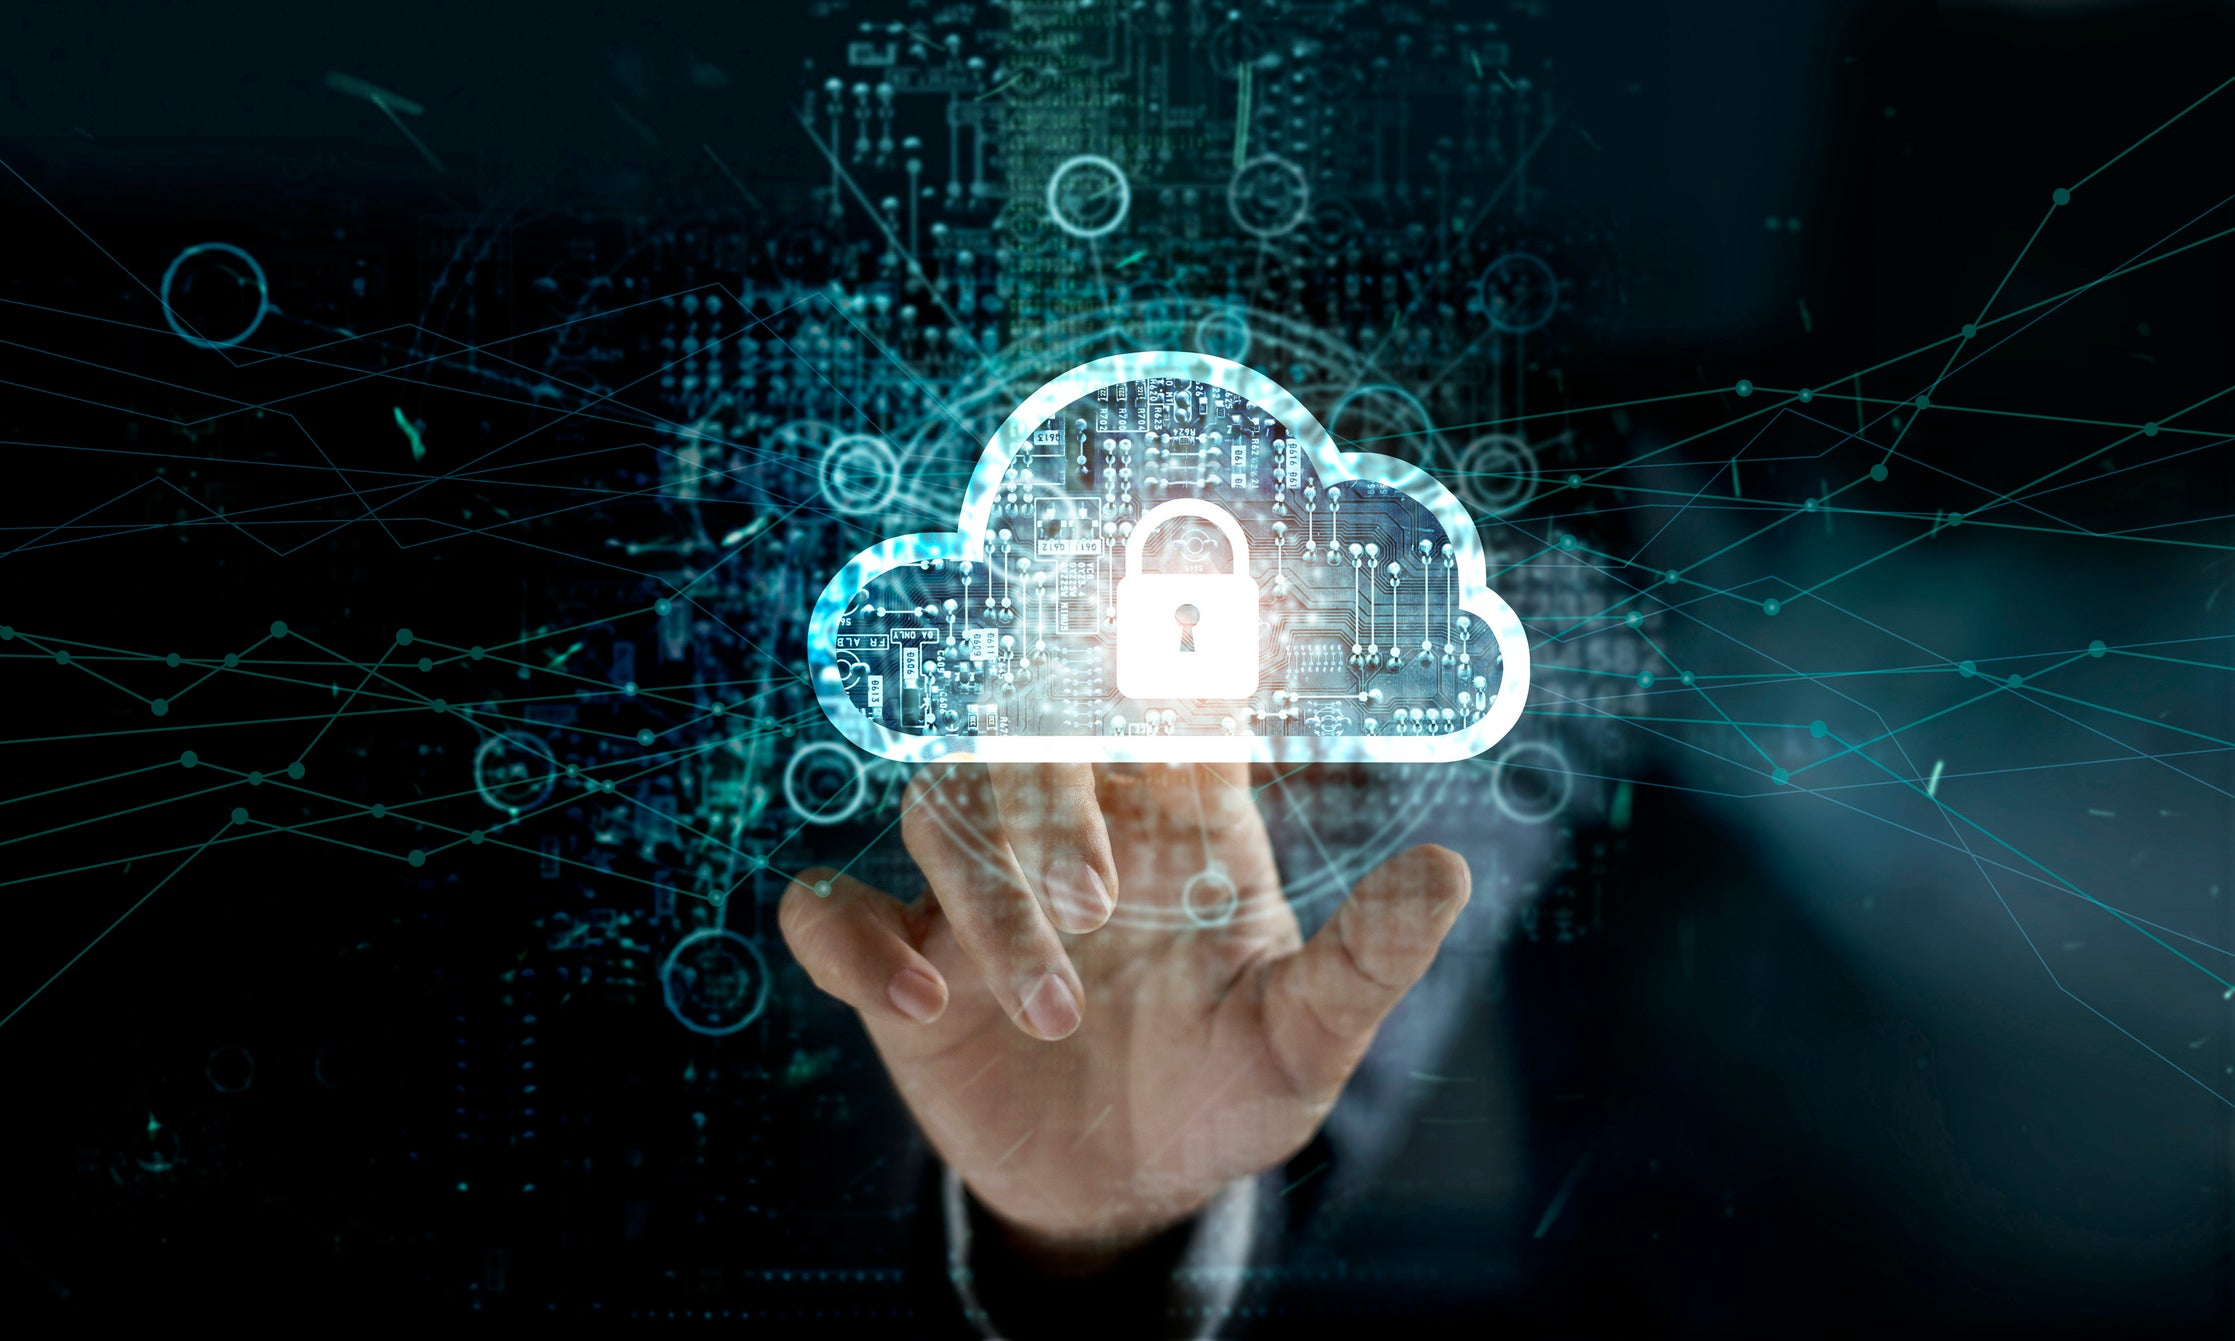 Why Zscaler Needs More Cloud Cybersecurity | The Motley Fool